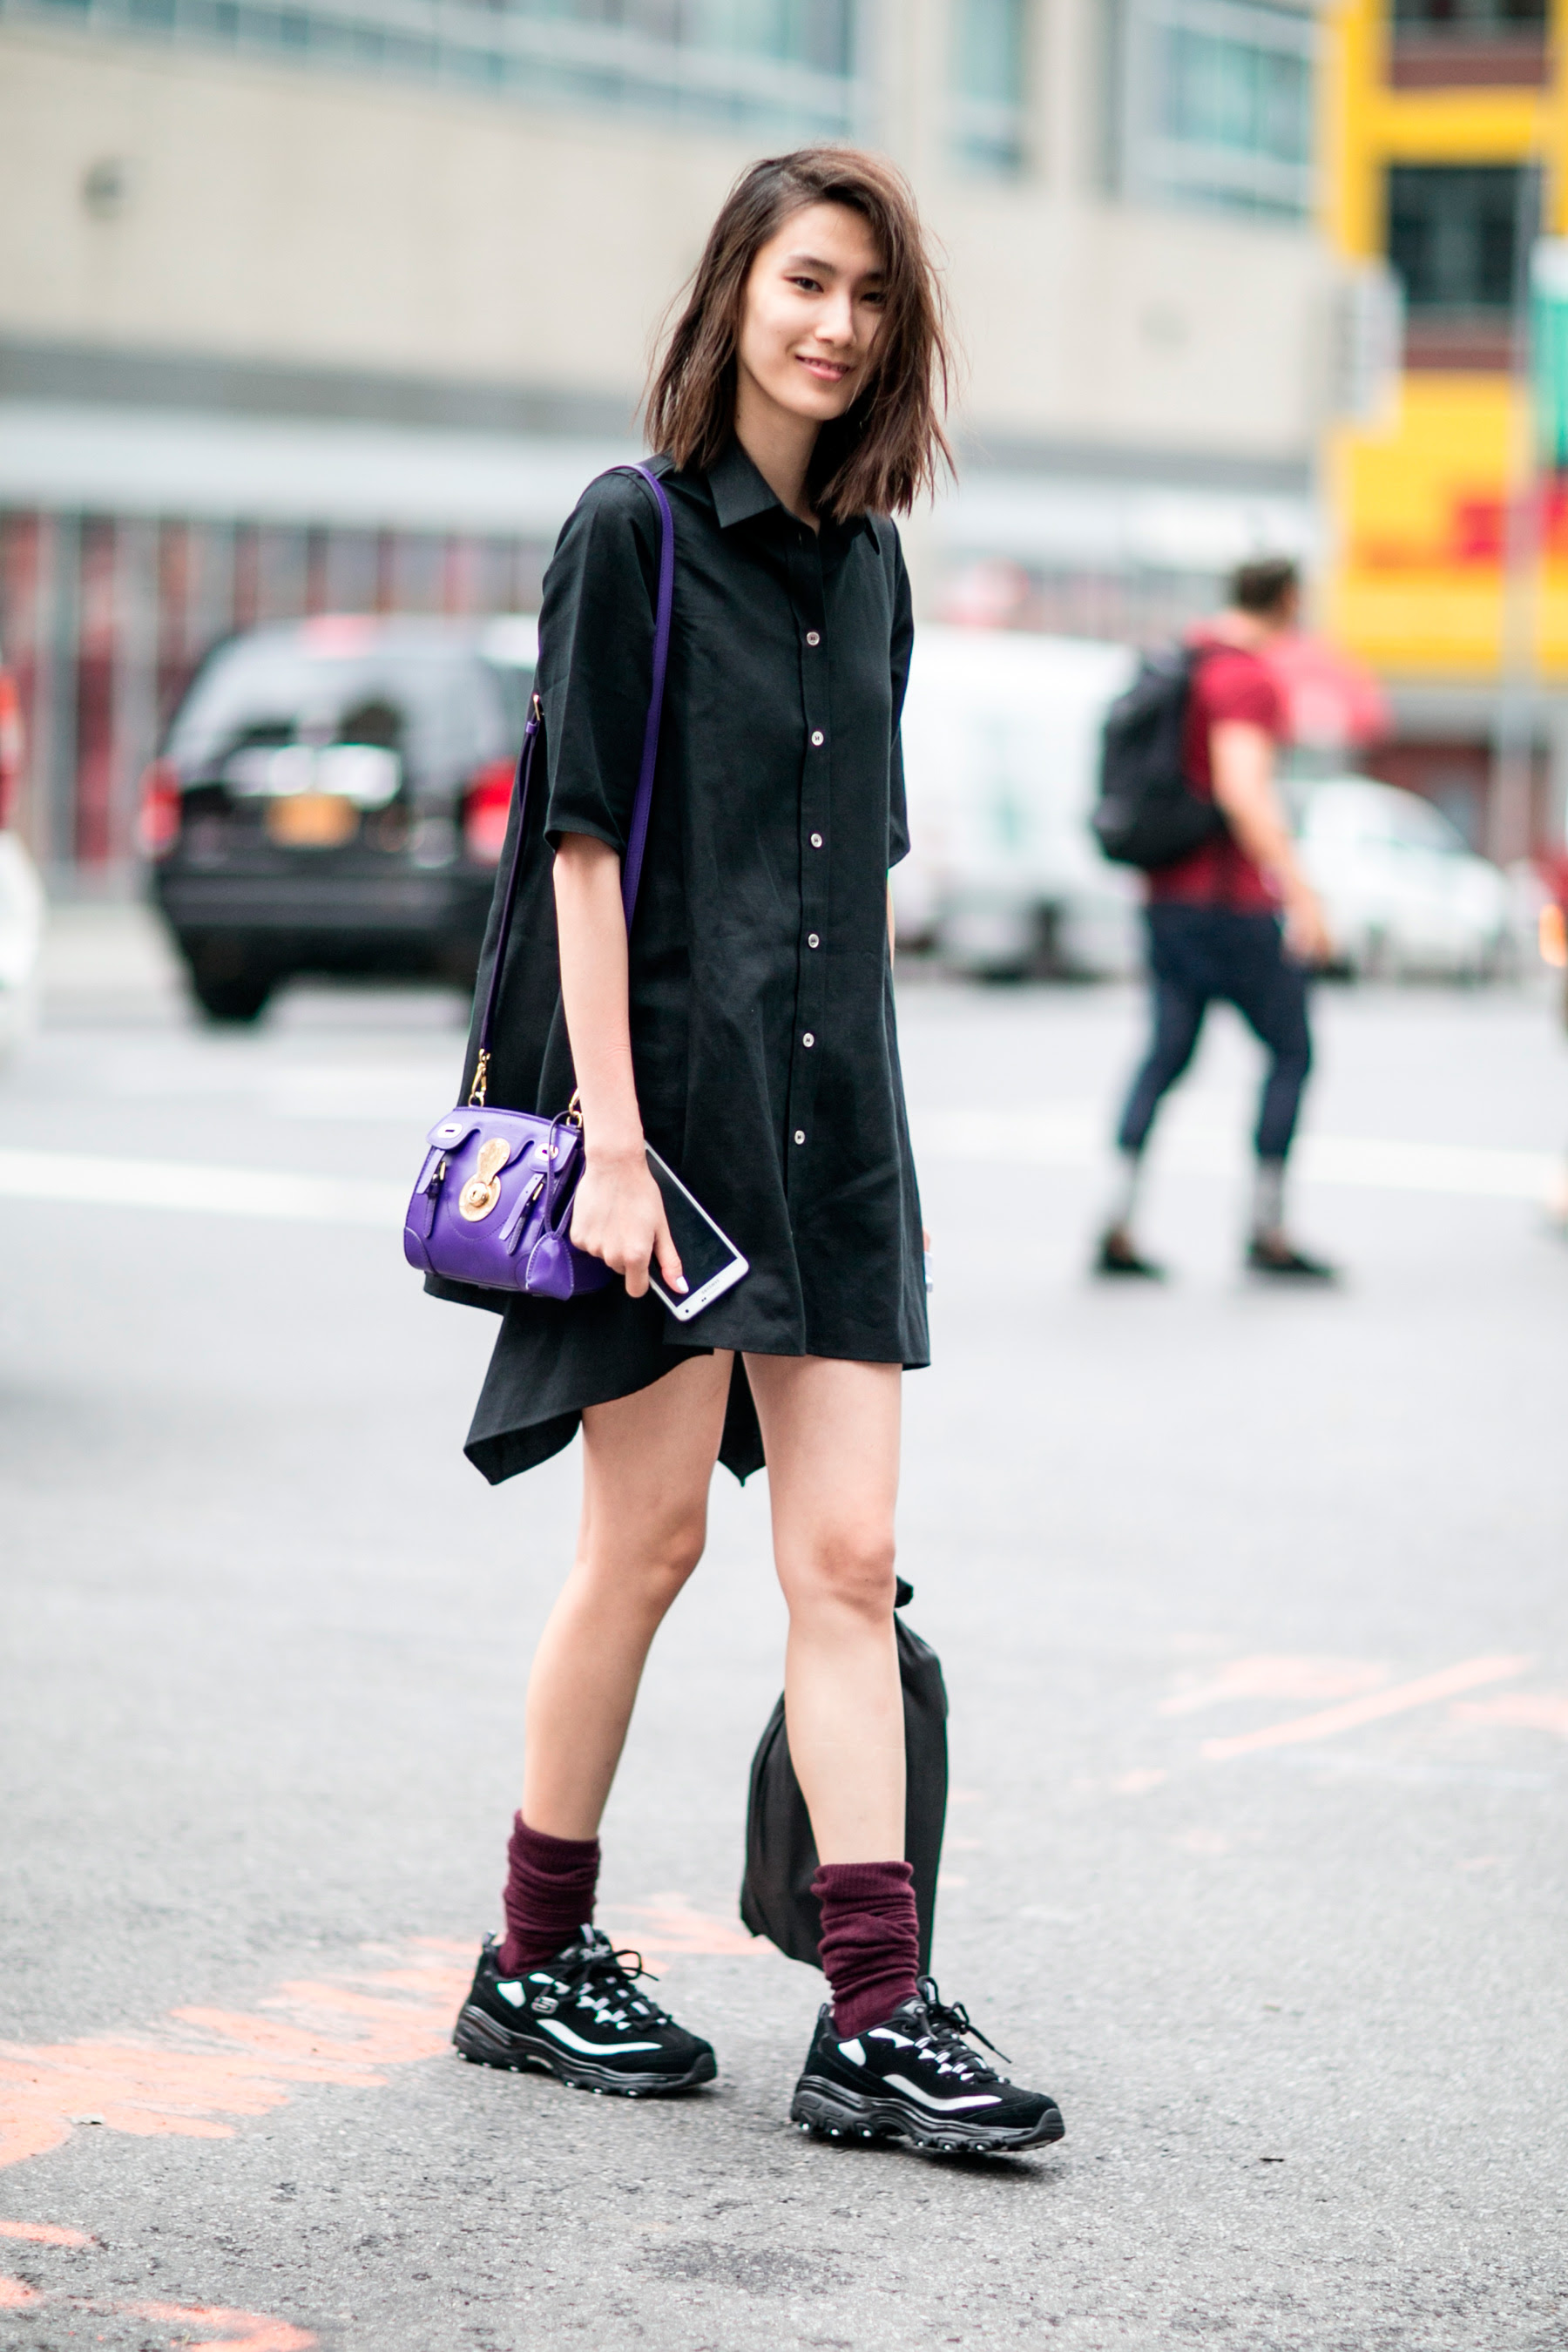 http://theimpression.com/wp-content/uploads/new-street-style-day-spring-2016-the-impression-10.jpg